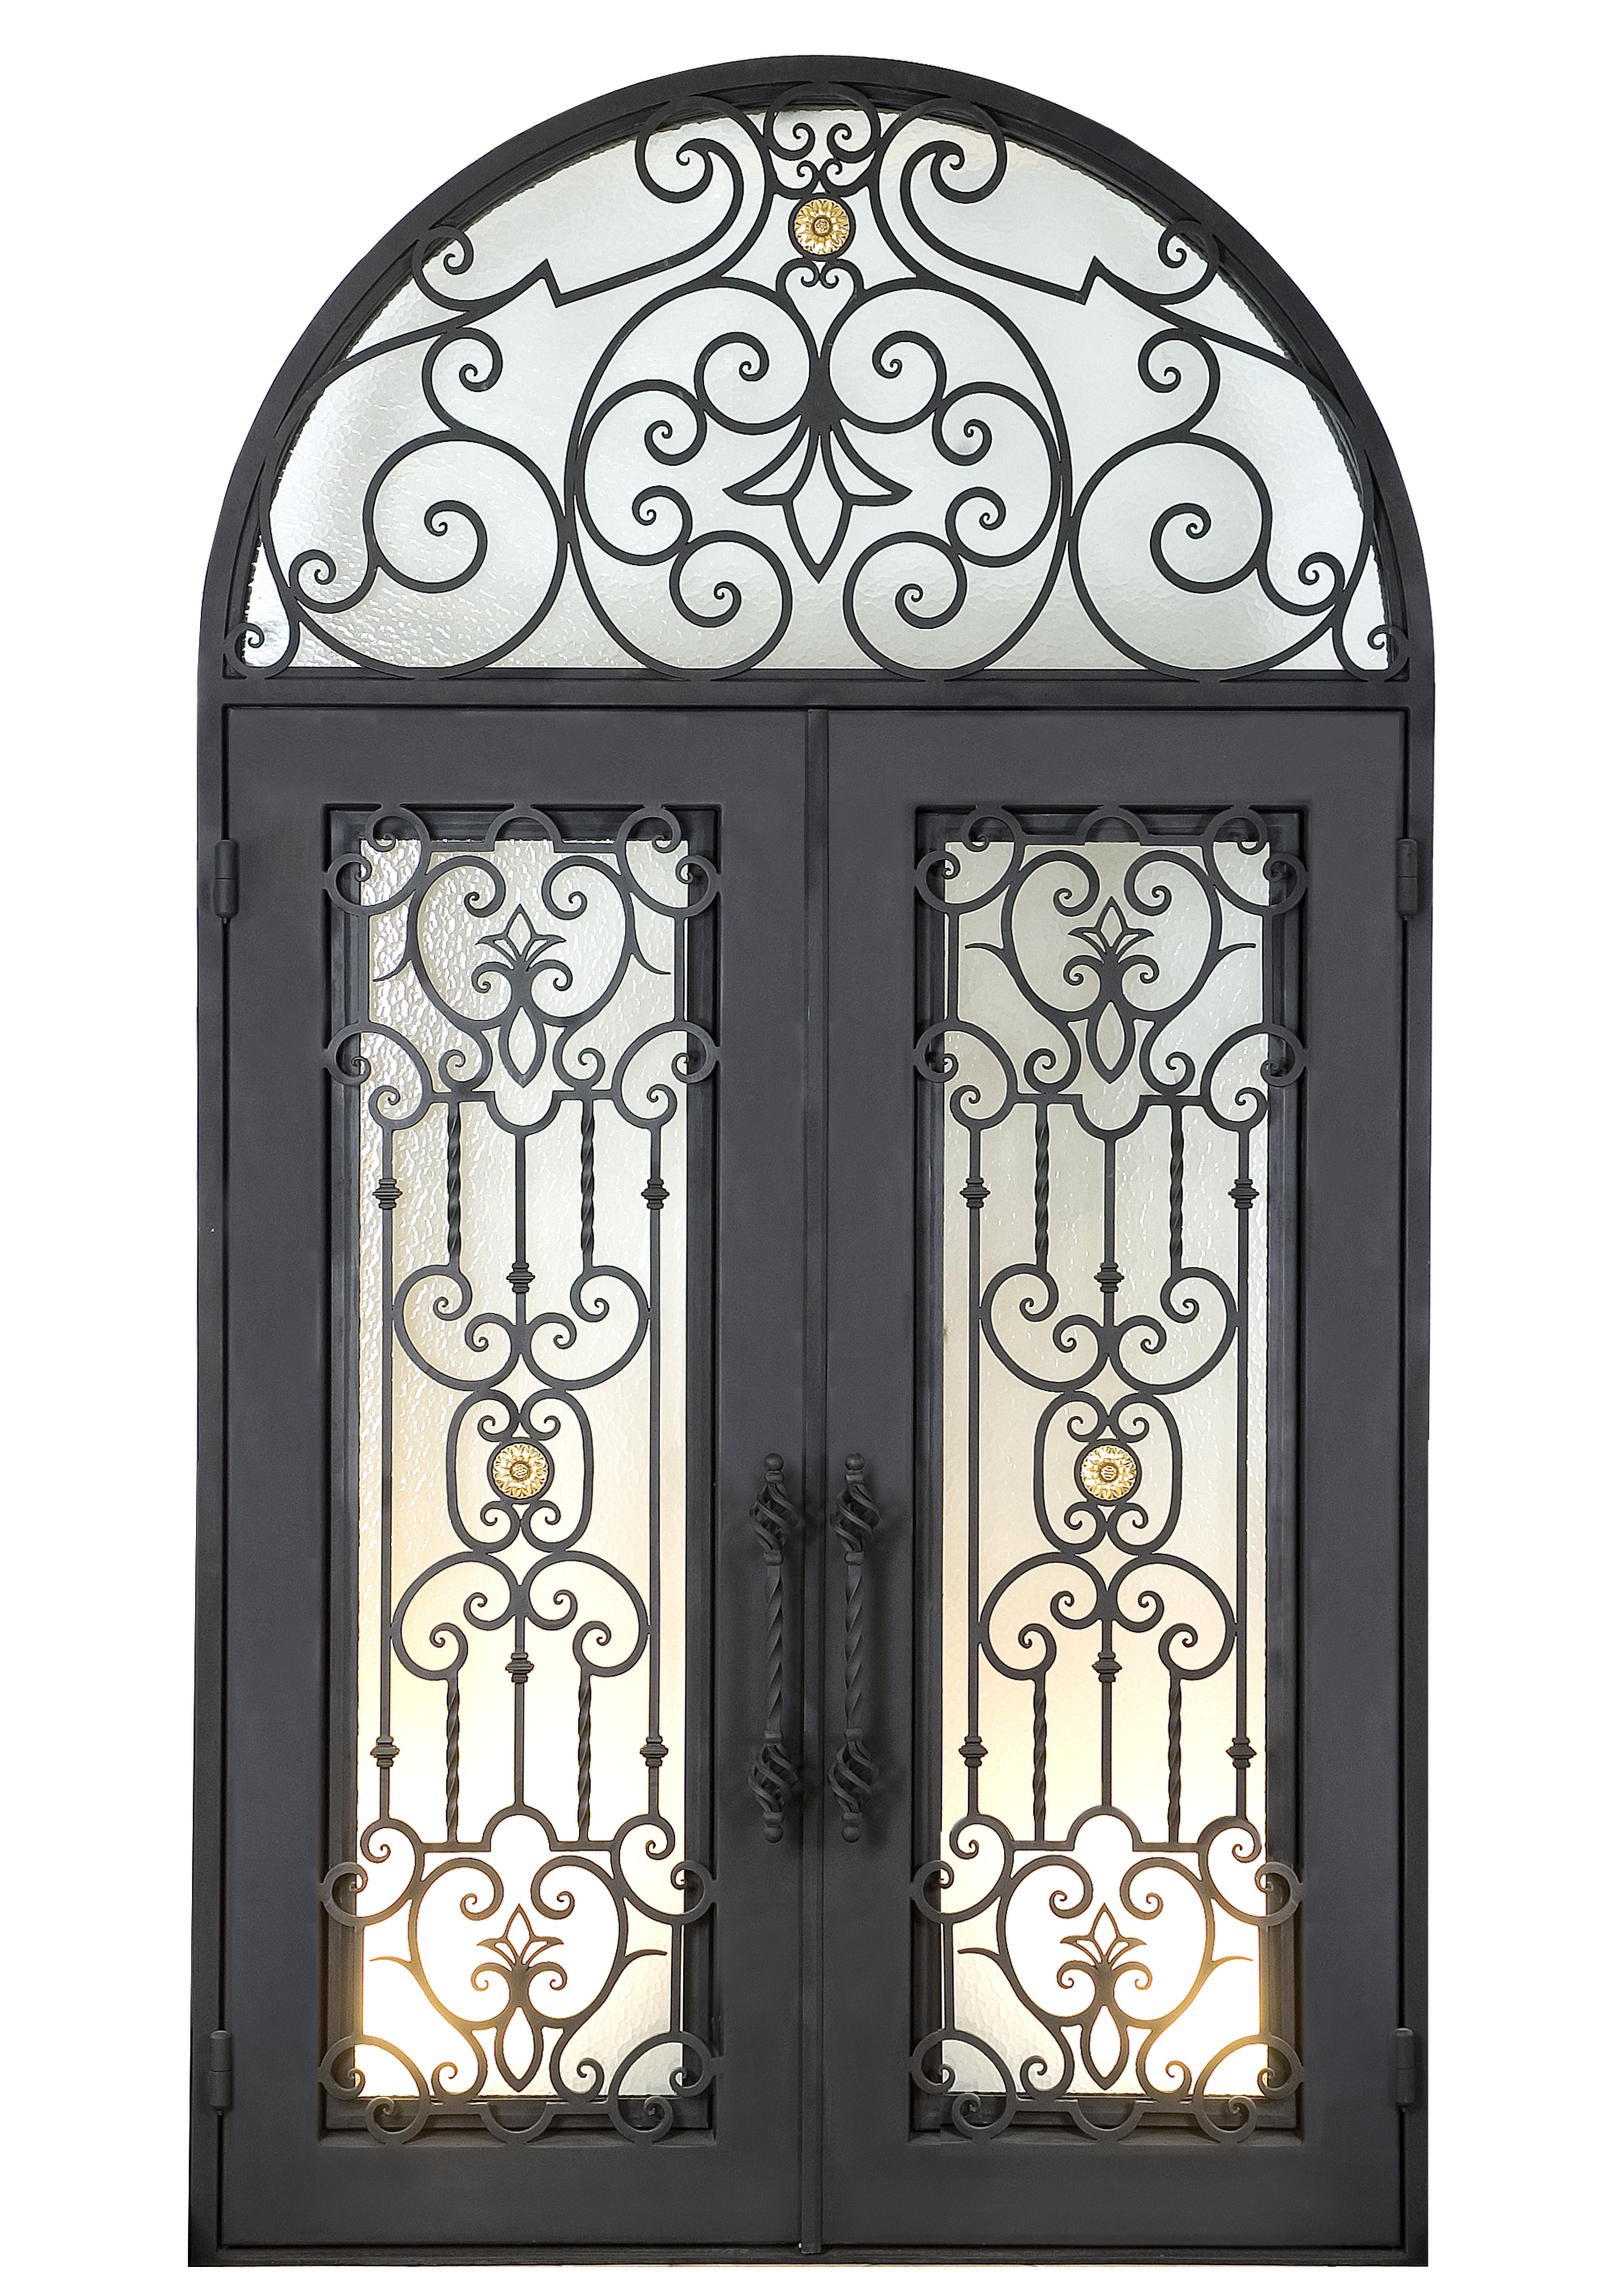 Shanghai Hench Brand China Factory 100% Custom Made Sale Australia Iron Security Gates For Homes